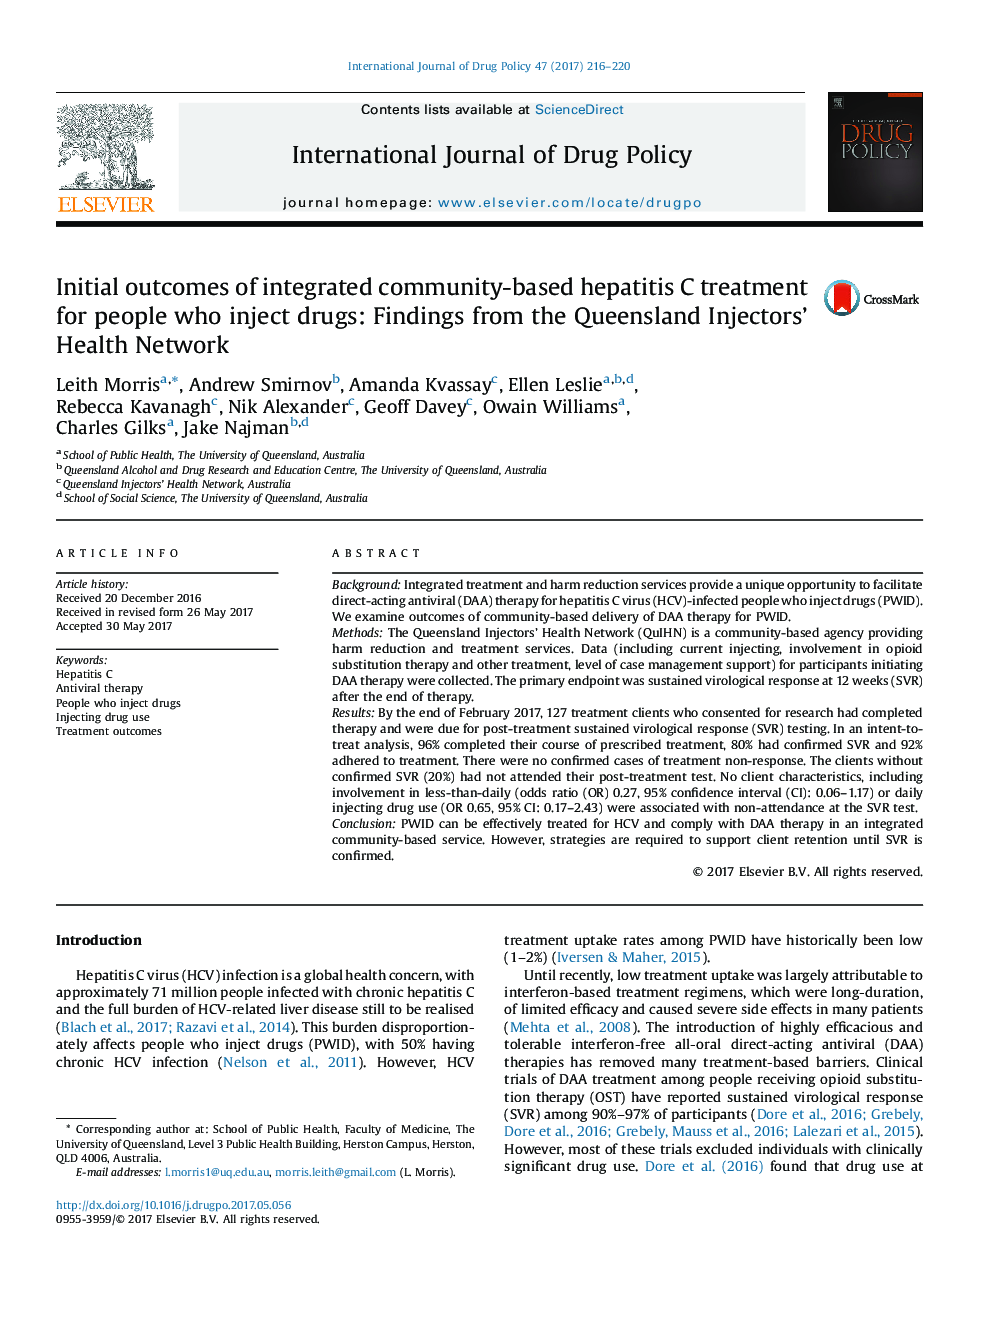 Initial outcomes of integrated community-based hepatitis C treatment for people who inject drugs: Findings from the Queensland Injectors' Health Network